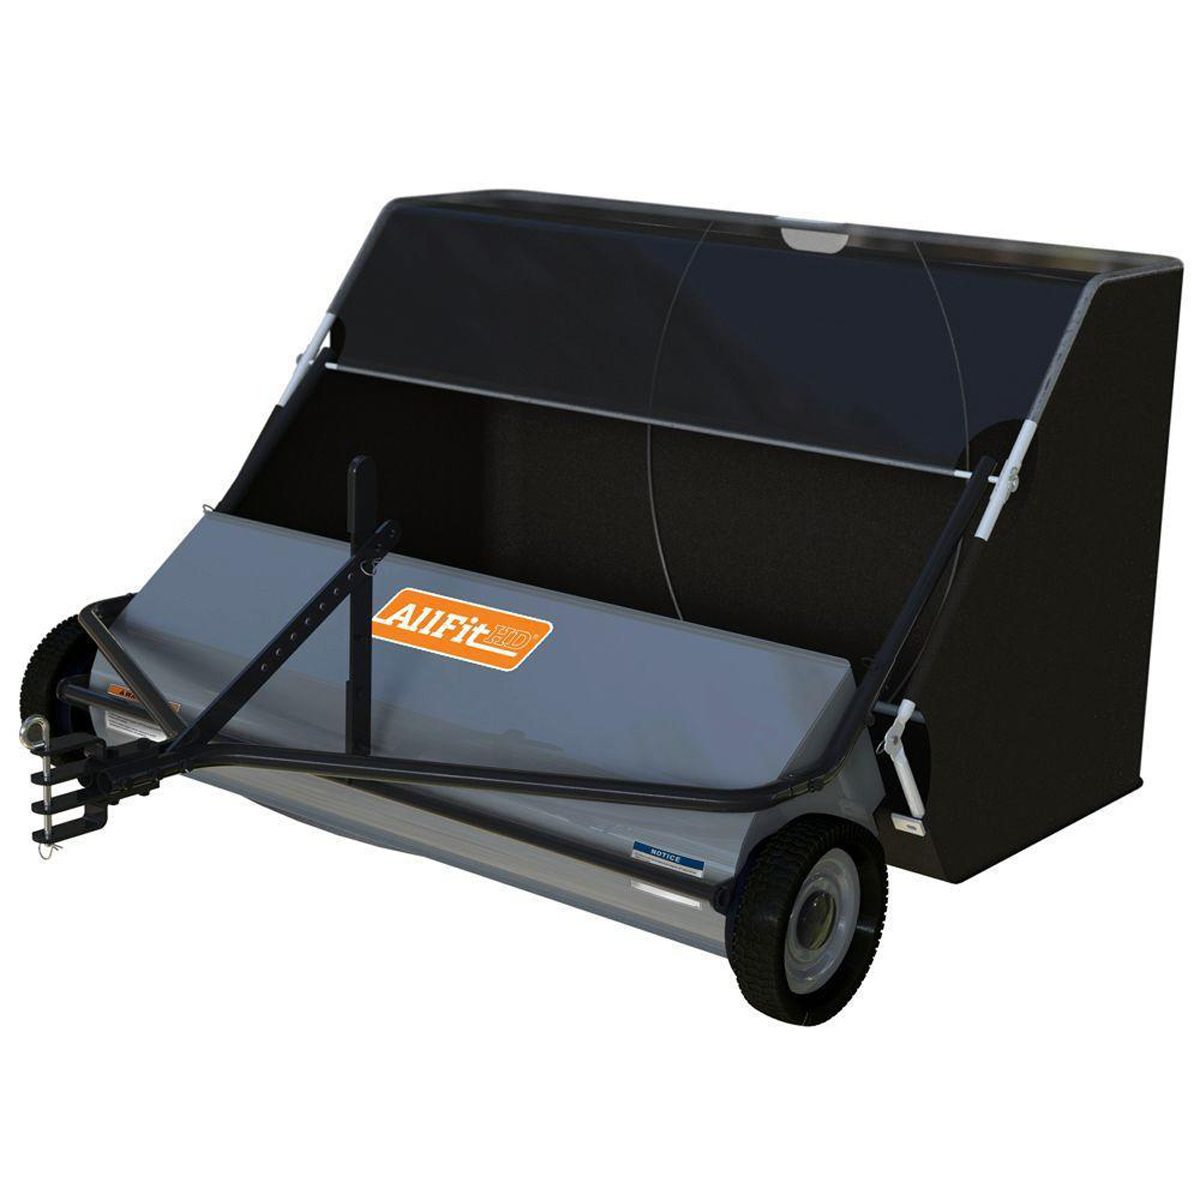 Sweeper for Big Cleanup Projects